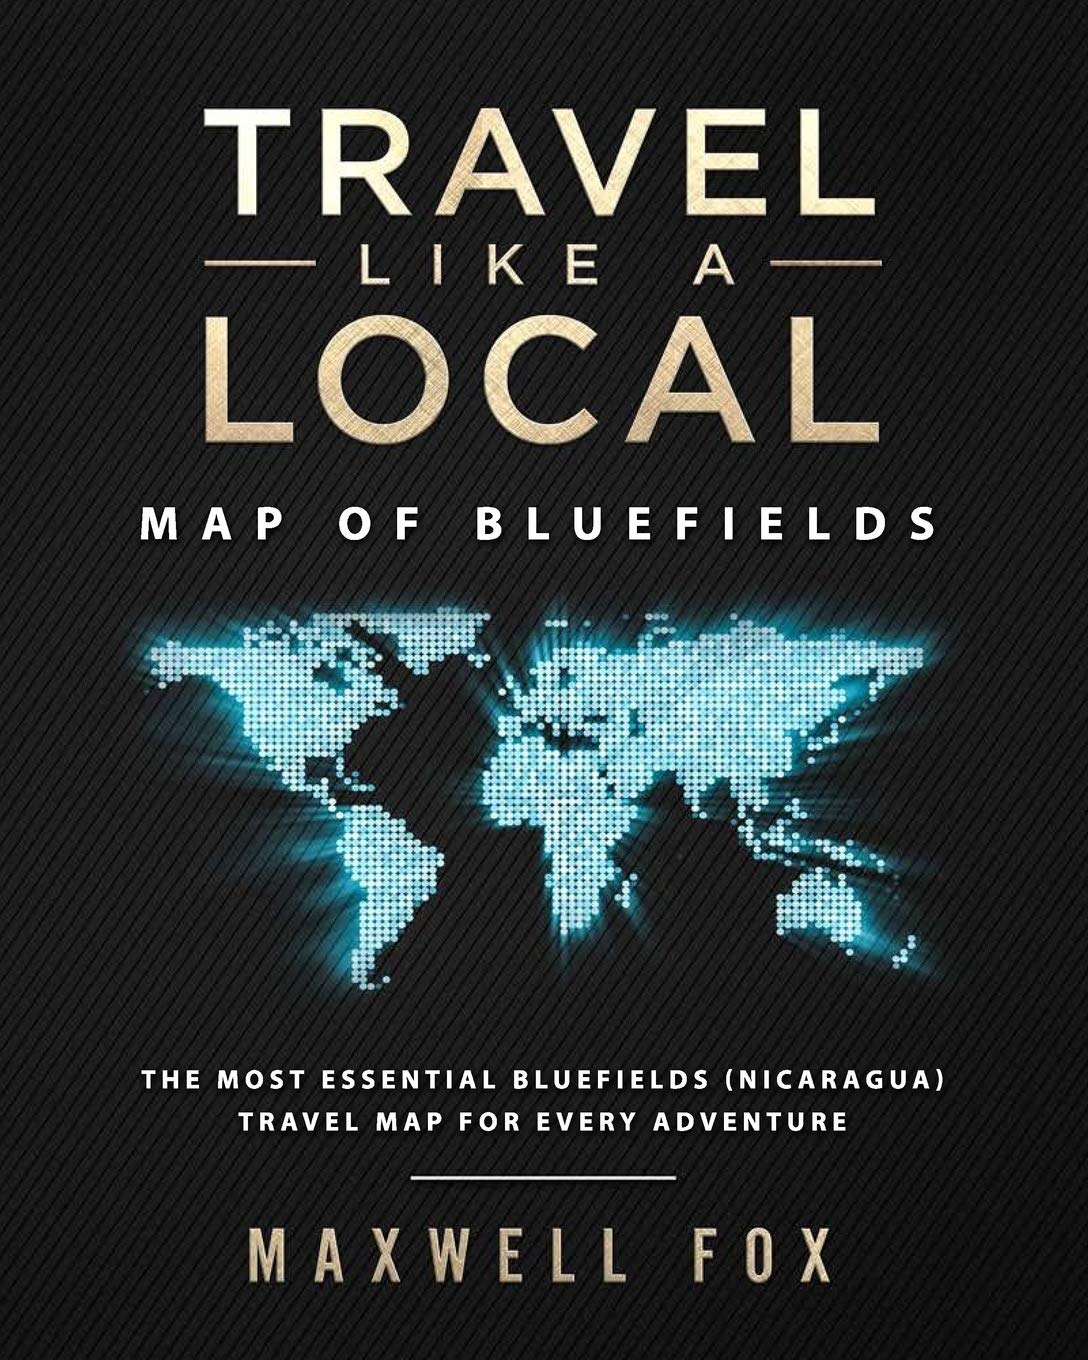 Travel Like a Local - Map of Bluefields: The Most Essential